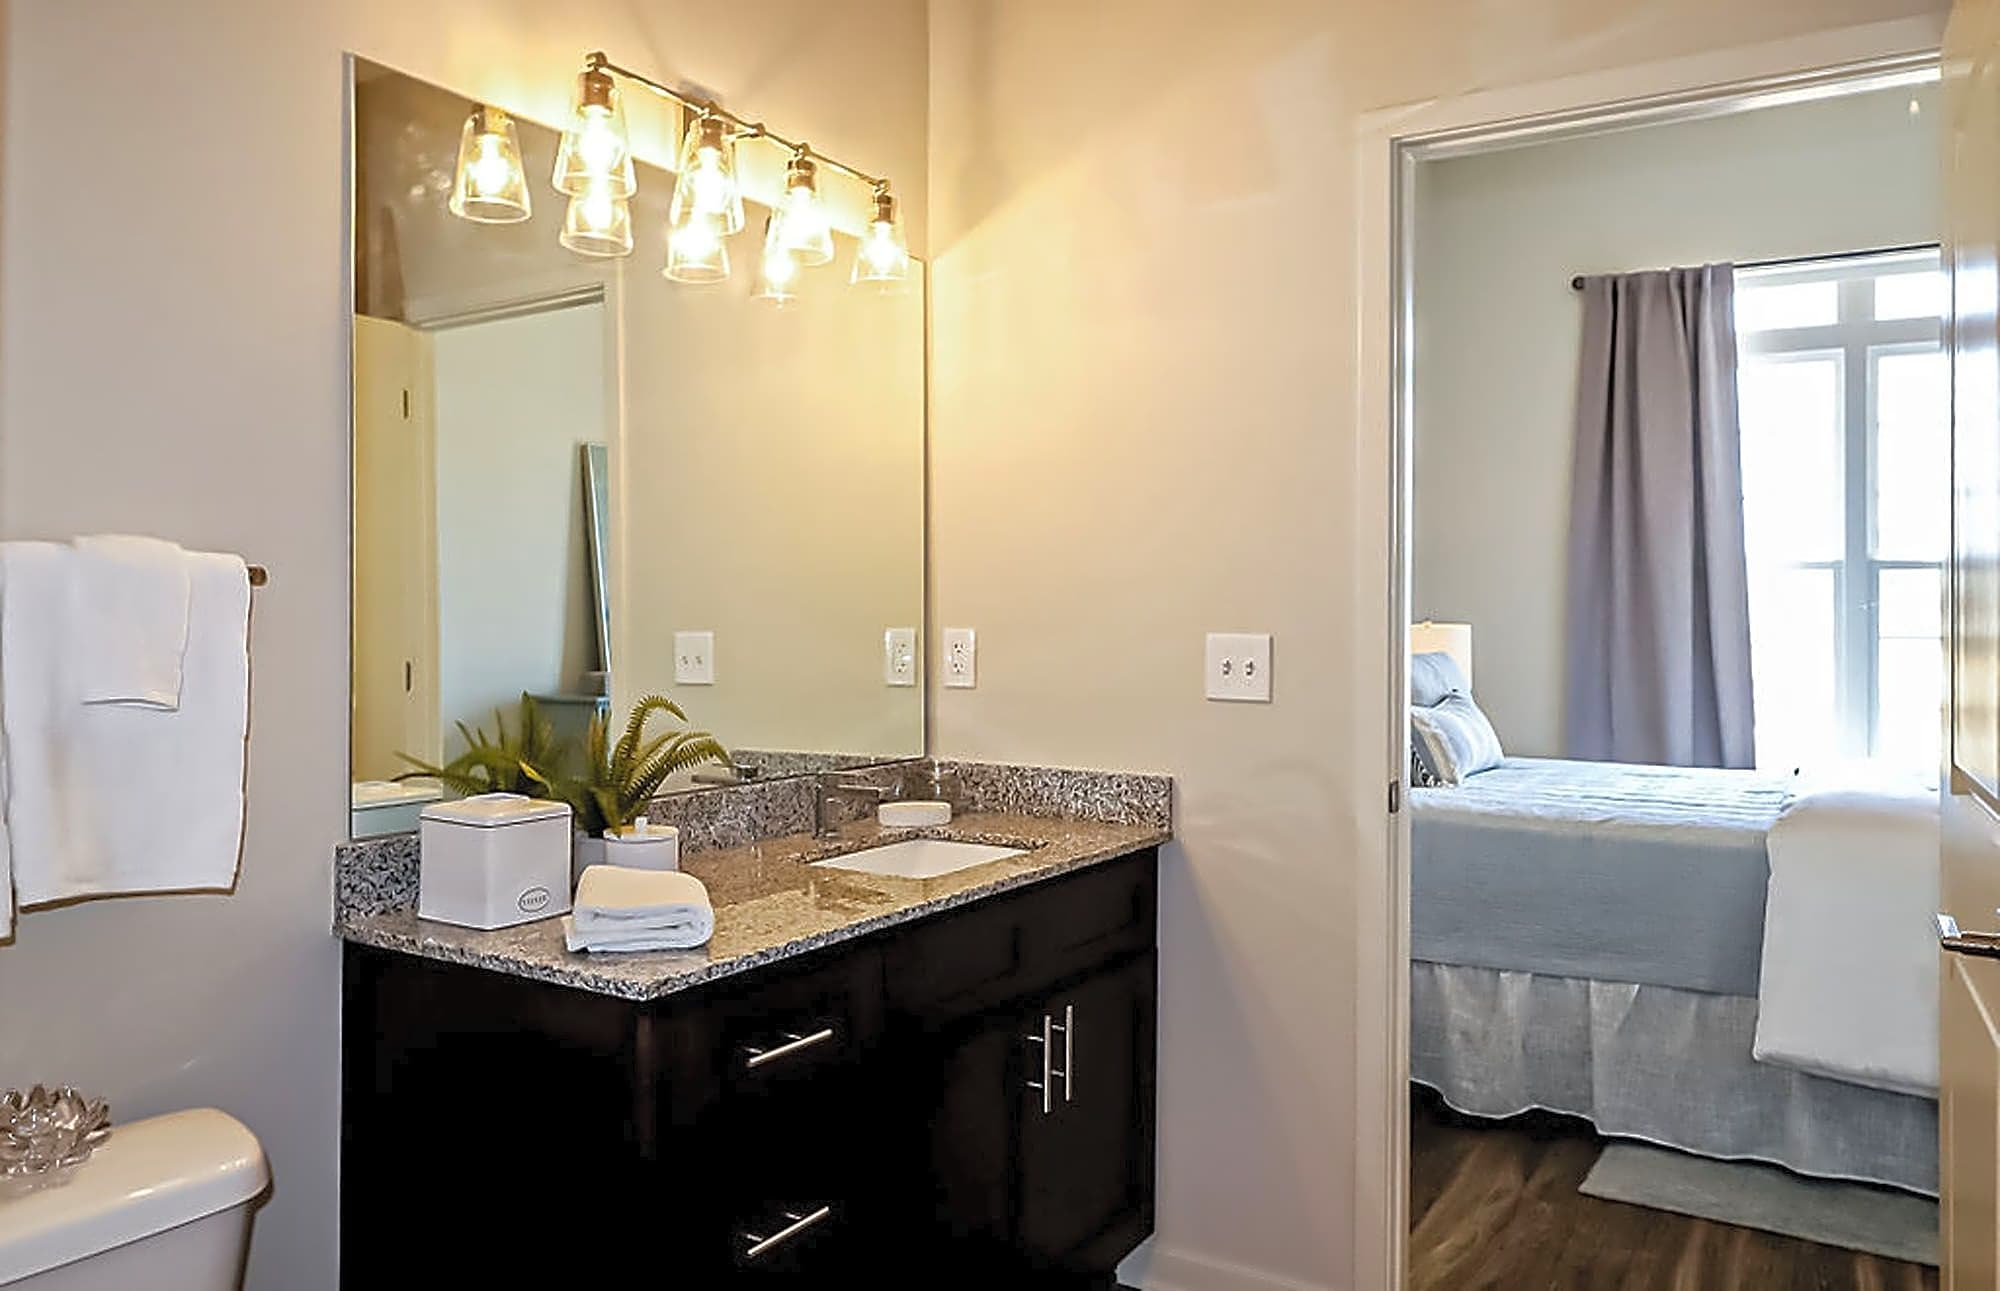 Apartments Near Mercer Station at River Crossing for Mercer University Students in Macon, GA